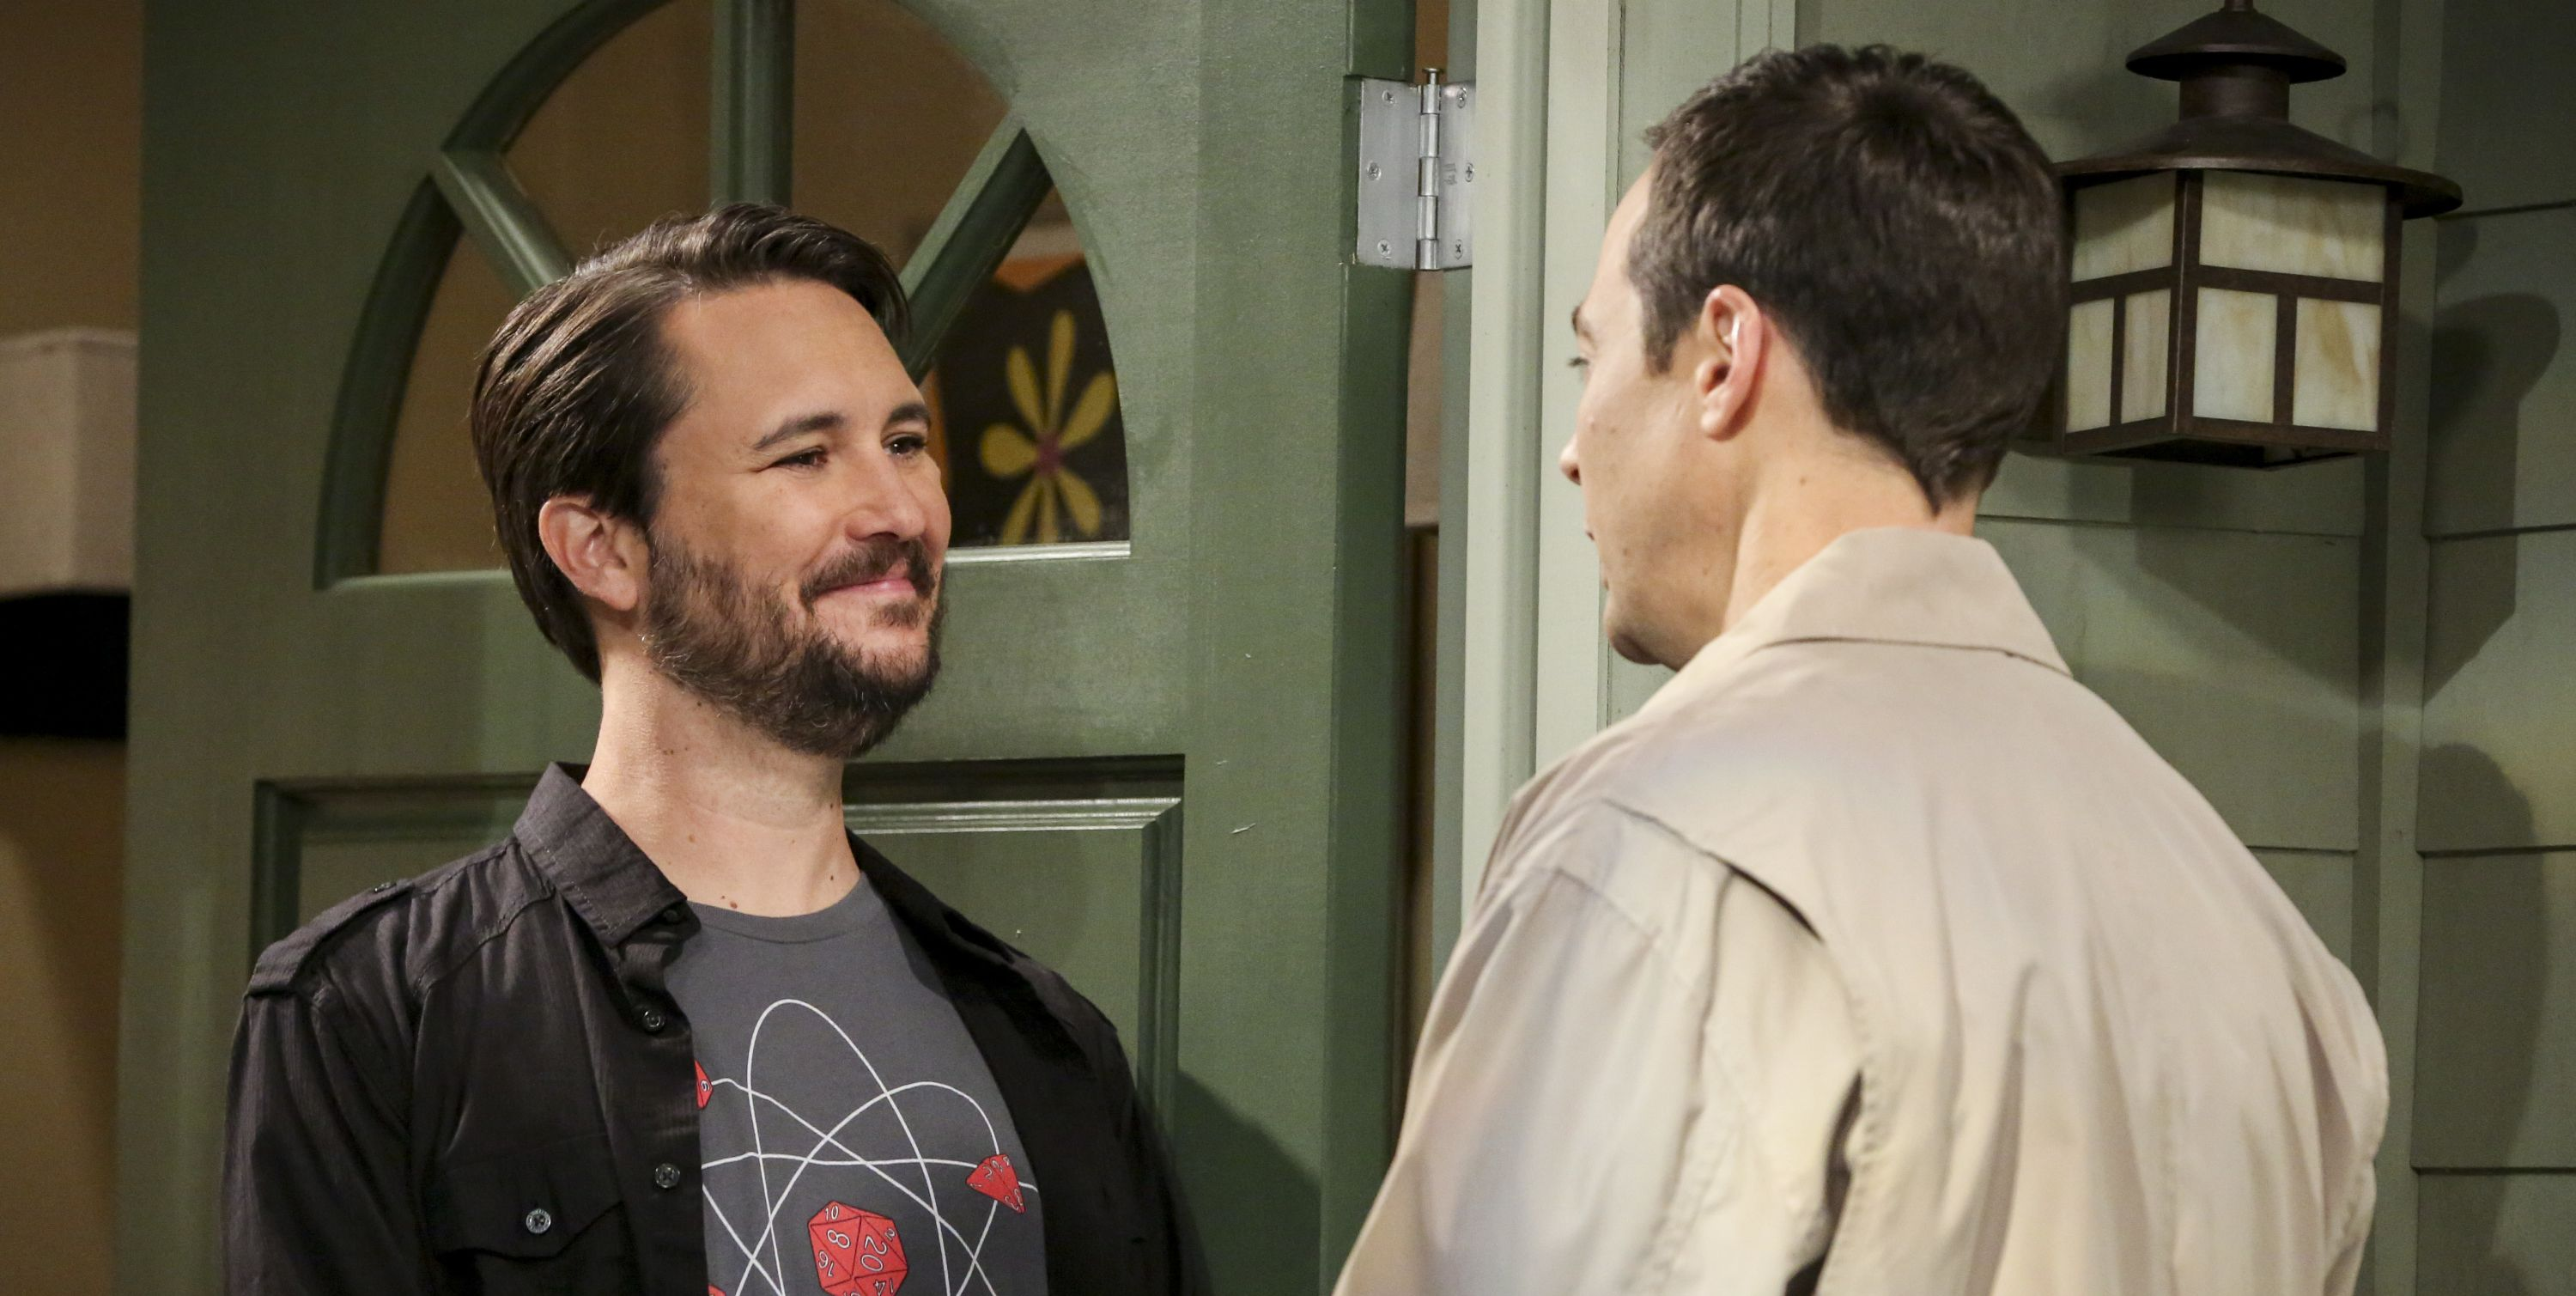 Wil Wheaton and Jim Parsons in The Big Bang Theory